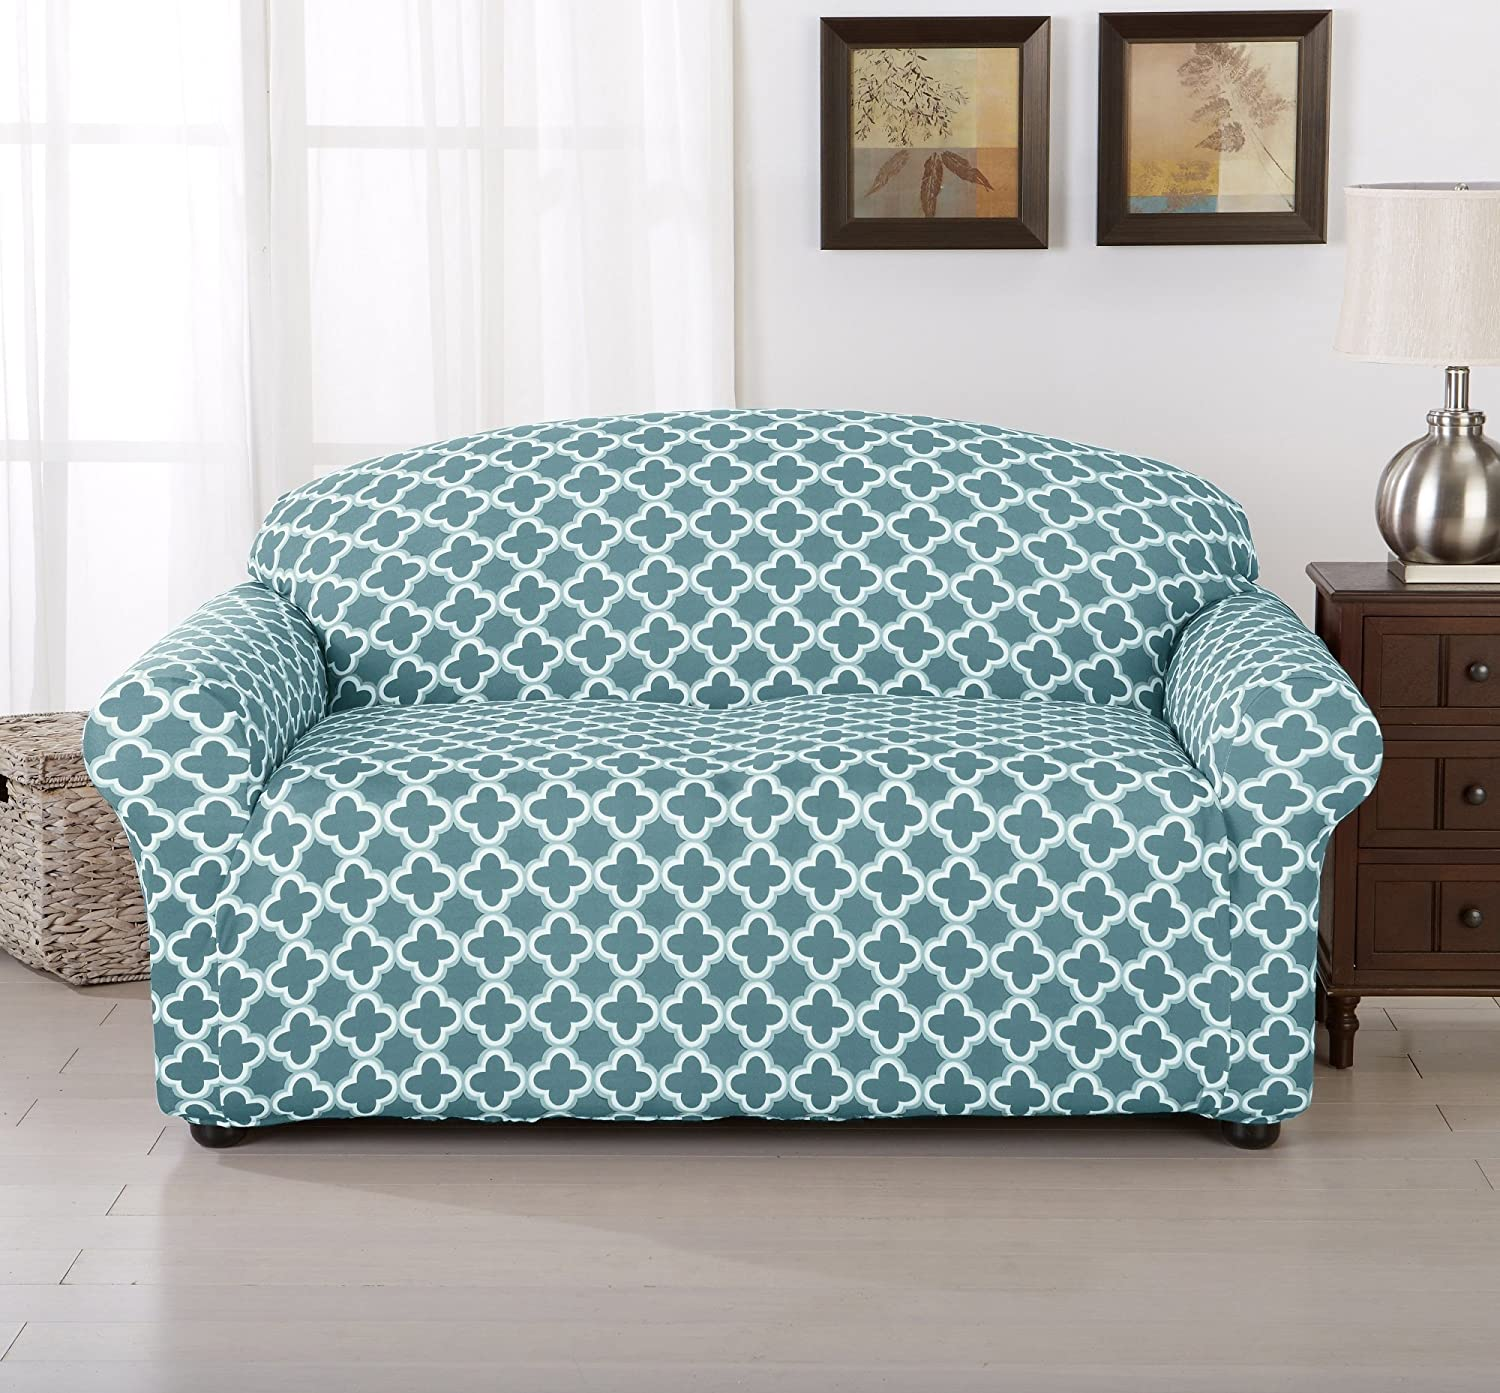 Awesome Turquoise Slipcover sofa